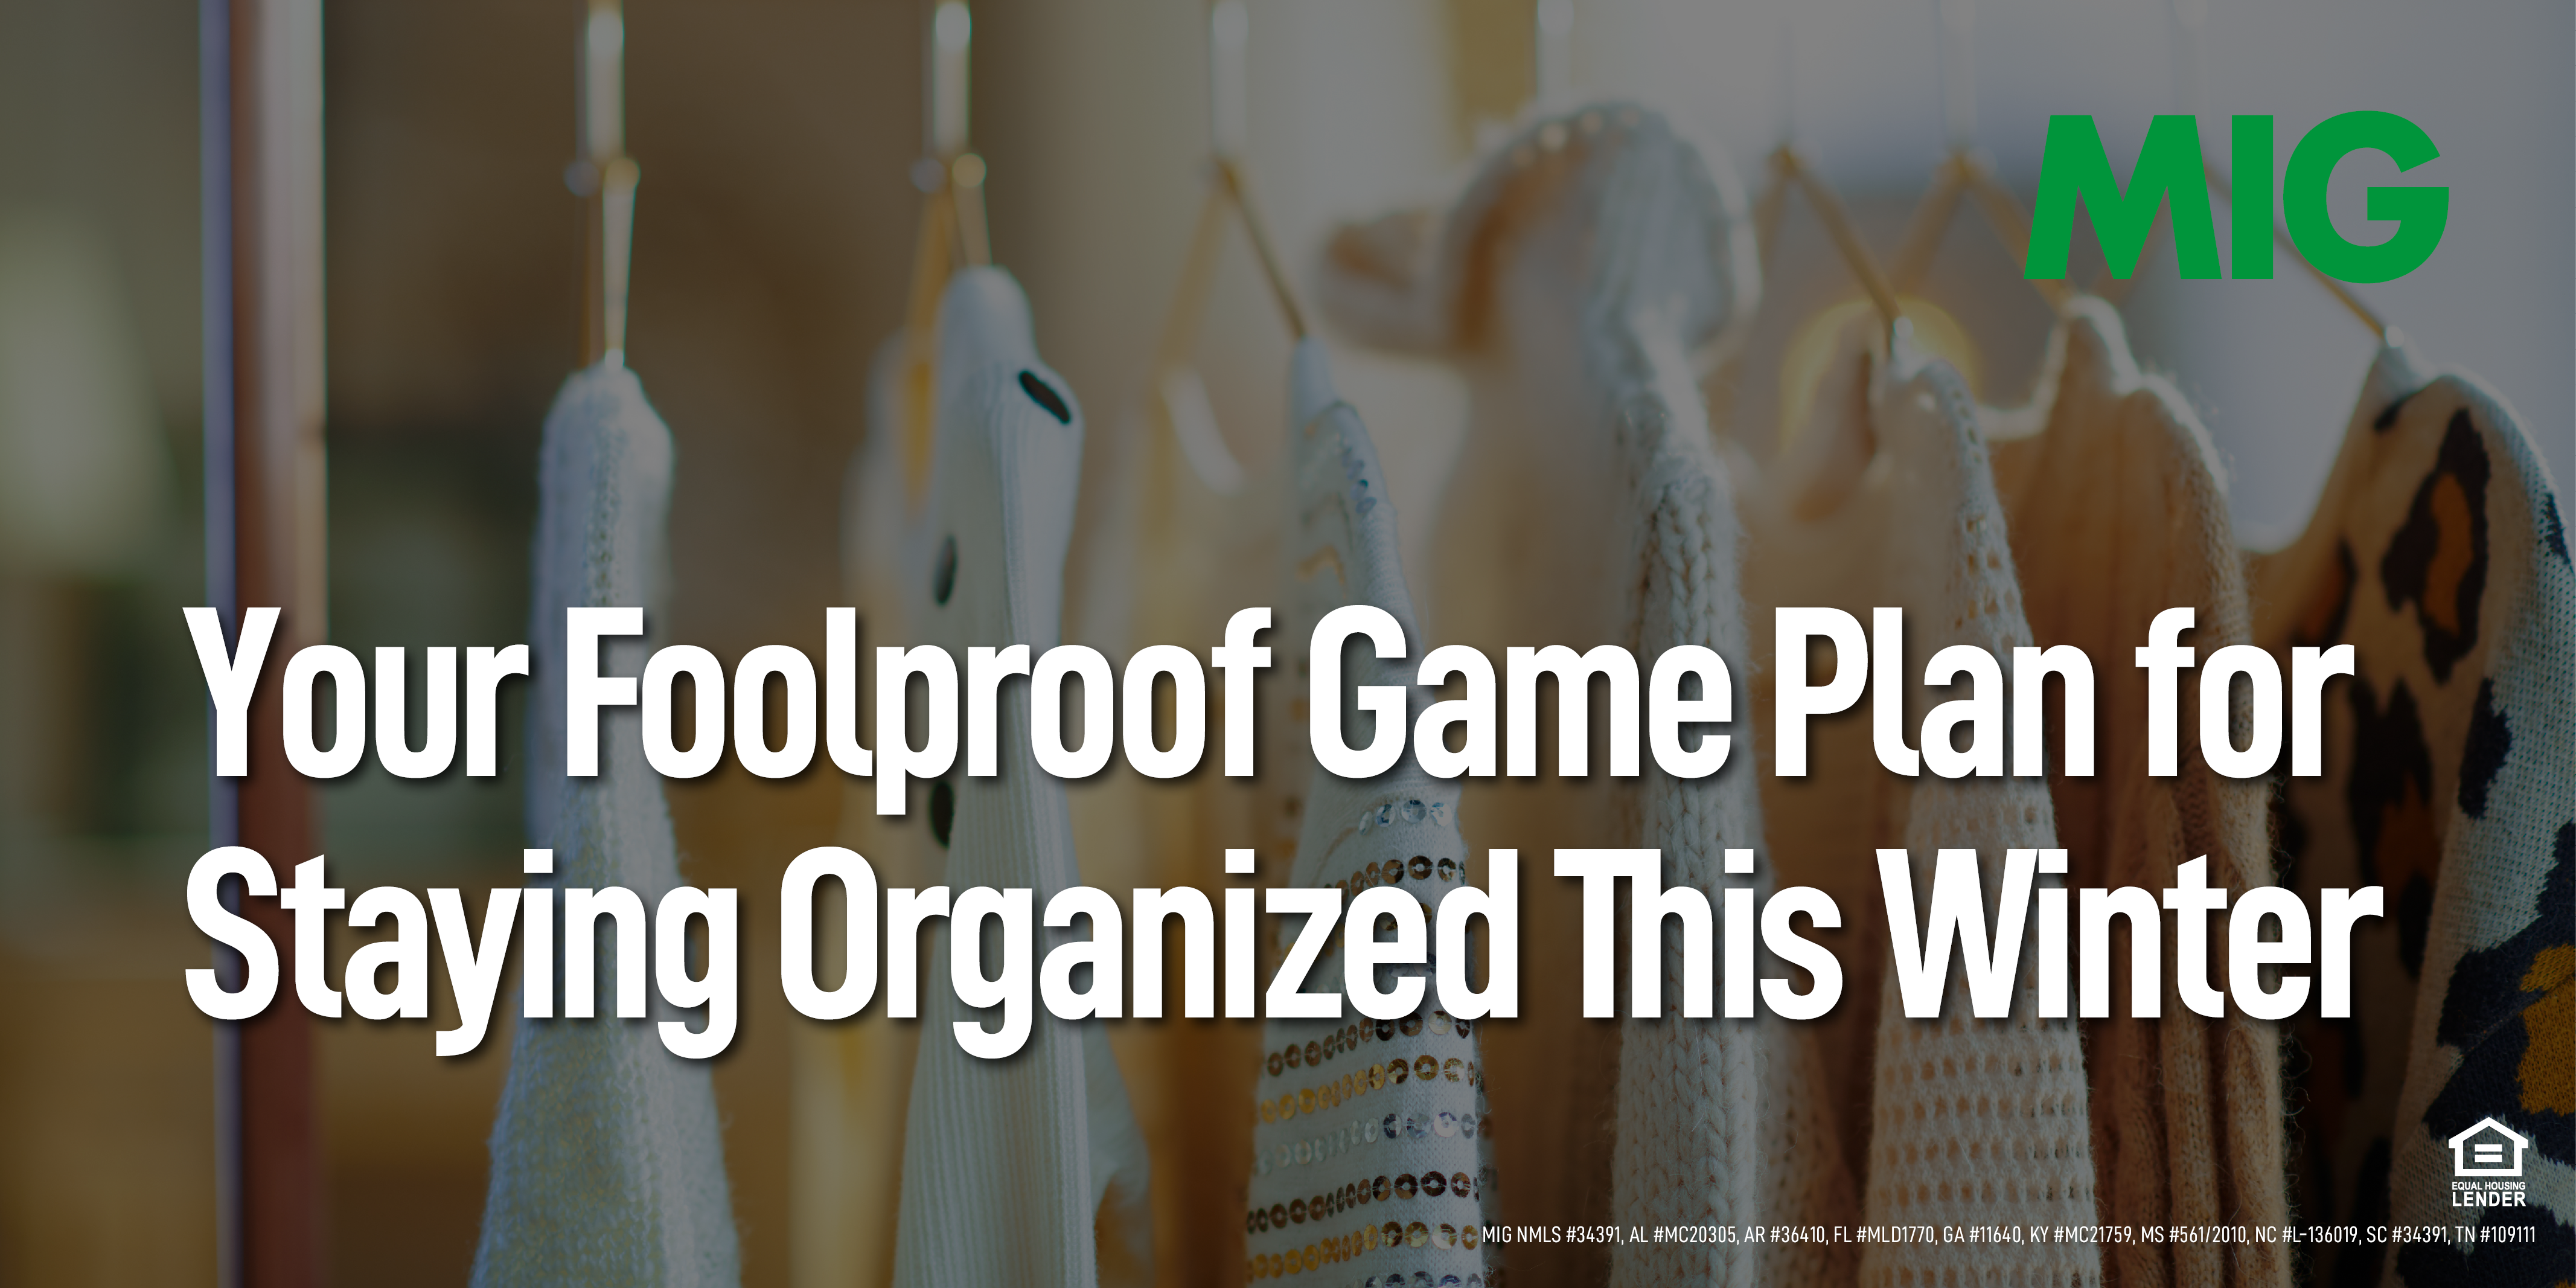 Your Foolproof Game Plan for Staying Organized This Winter